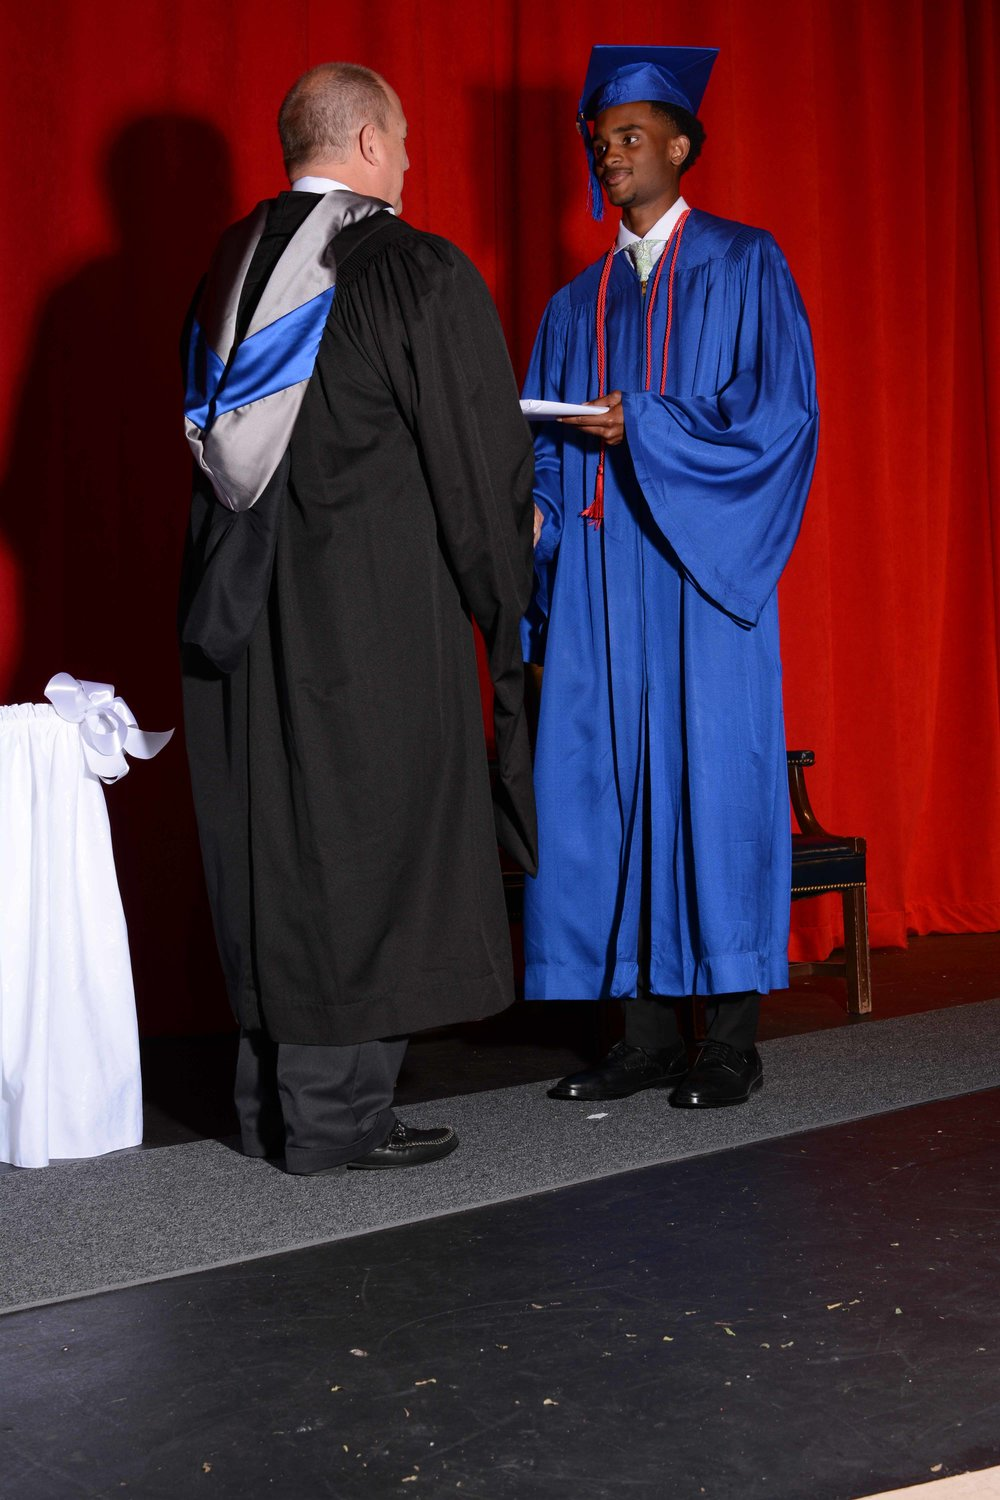 May15 HardingGraduation78.jpg